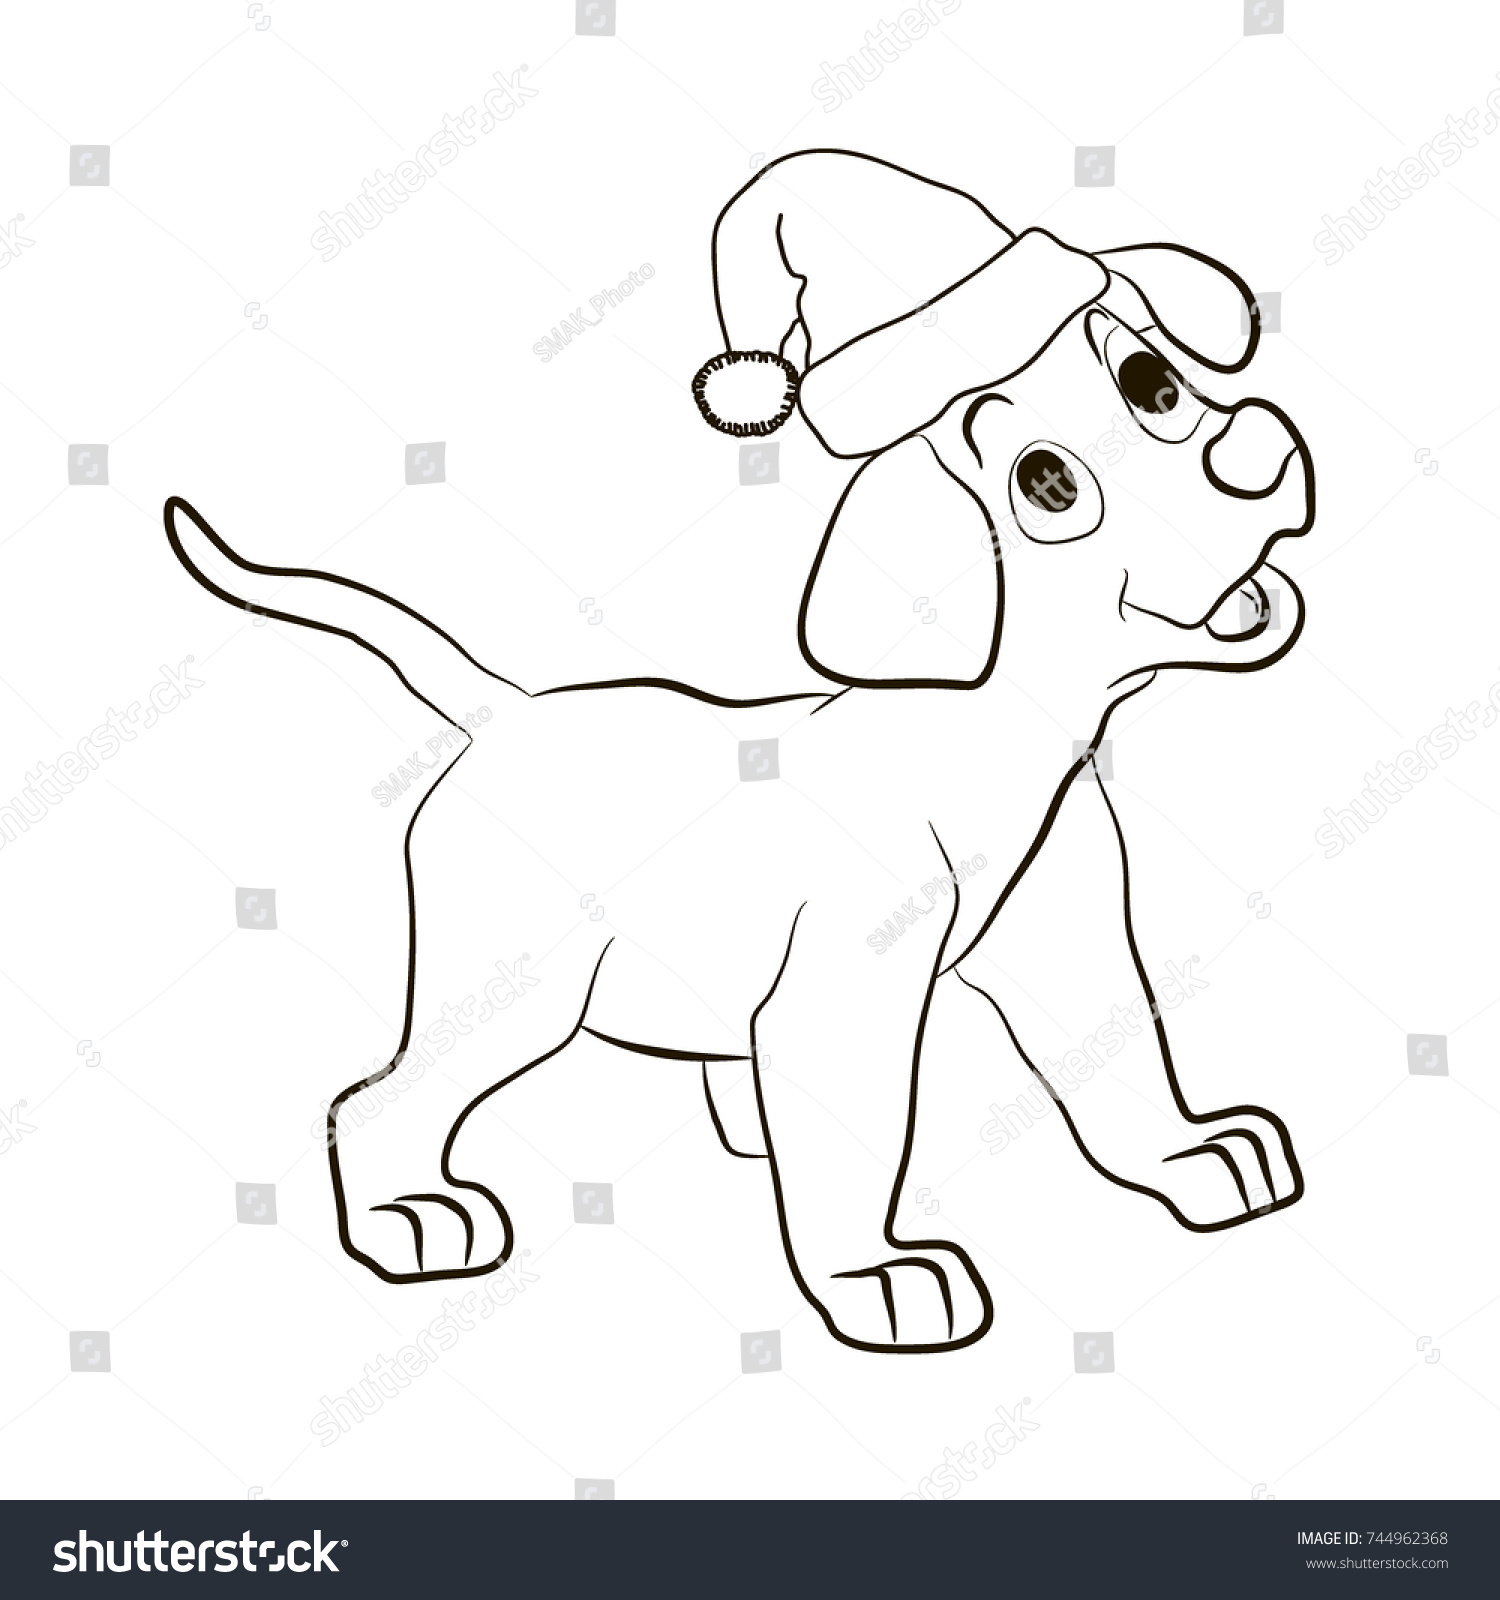 Santa Dog Coloring Pages With Alert Famous Stocking To Color A Puppy In Christmas